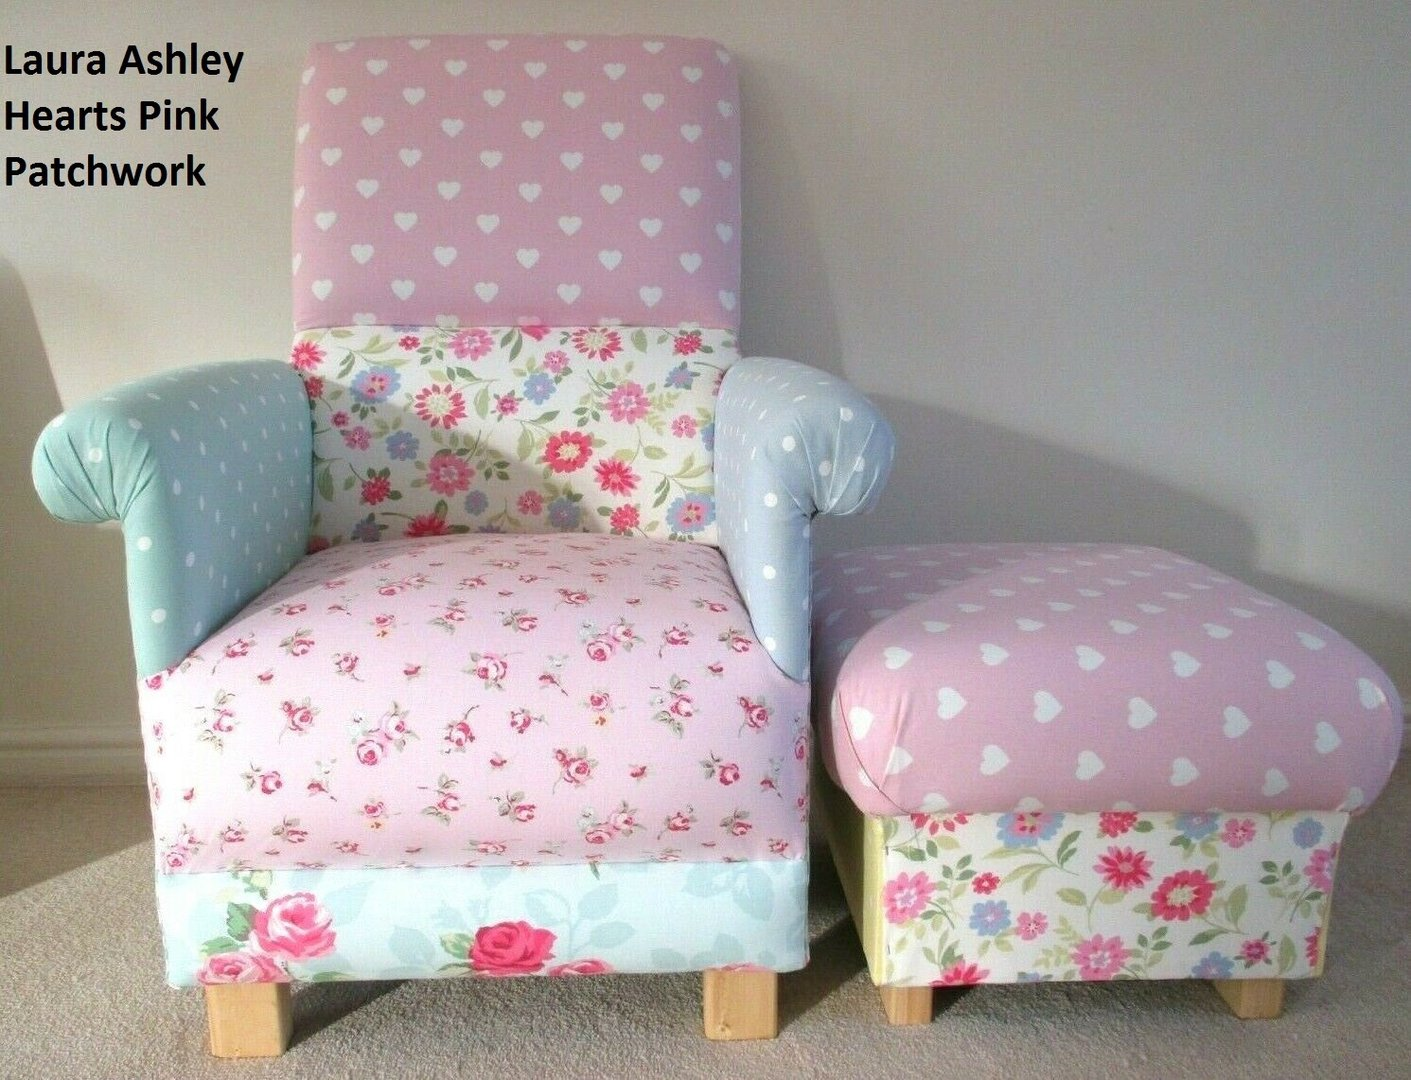 laura ashley pink hearts patch